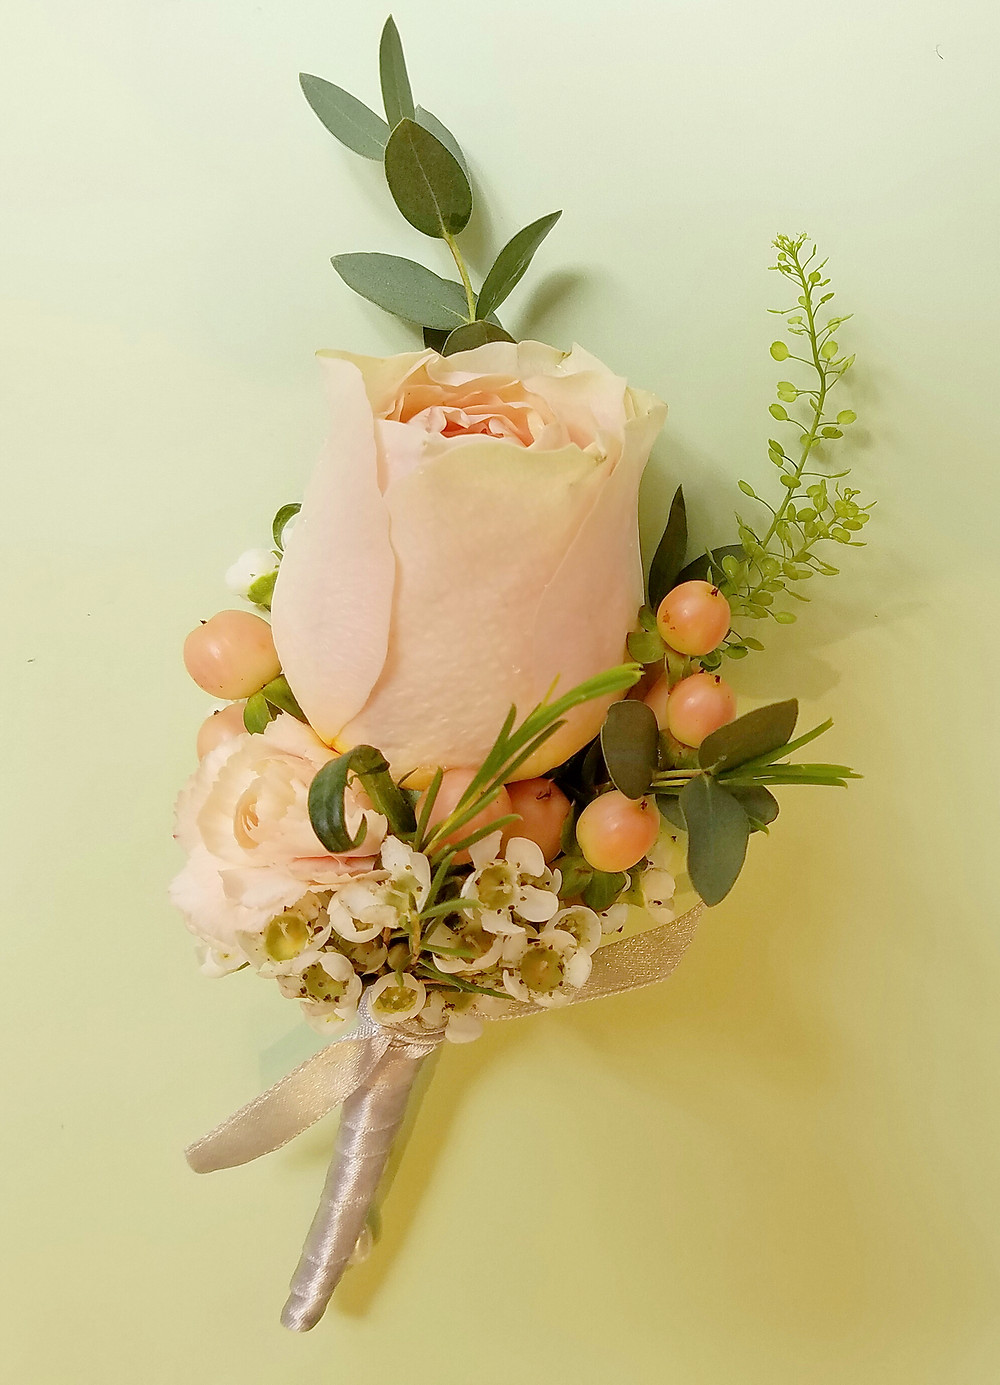 Flowers designed for wedding in 2017 and we look to desing for your dream occasion